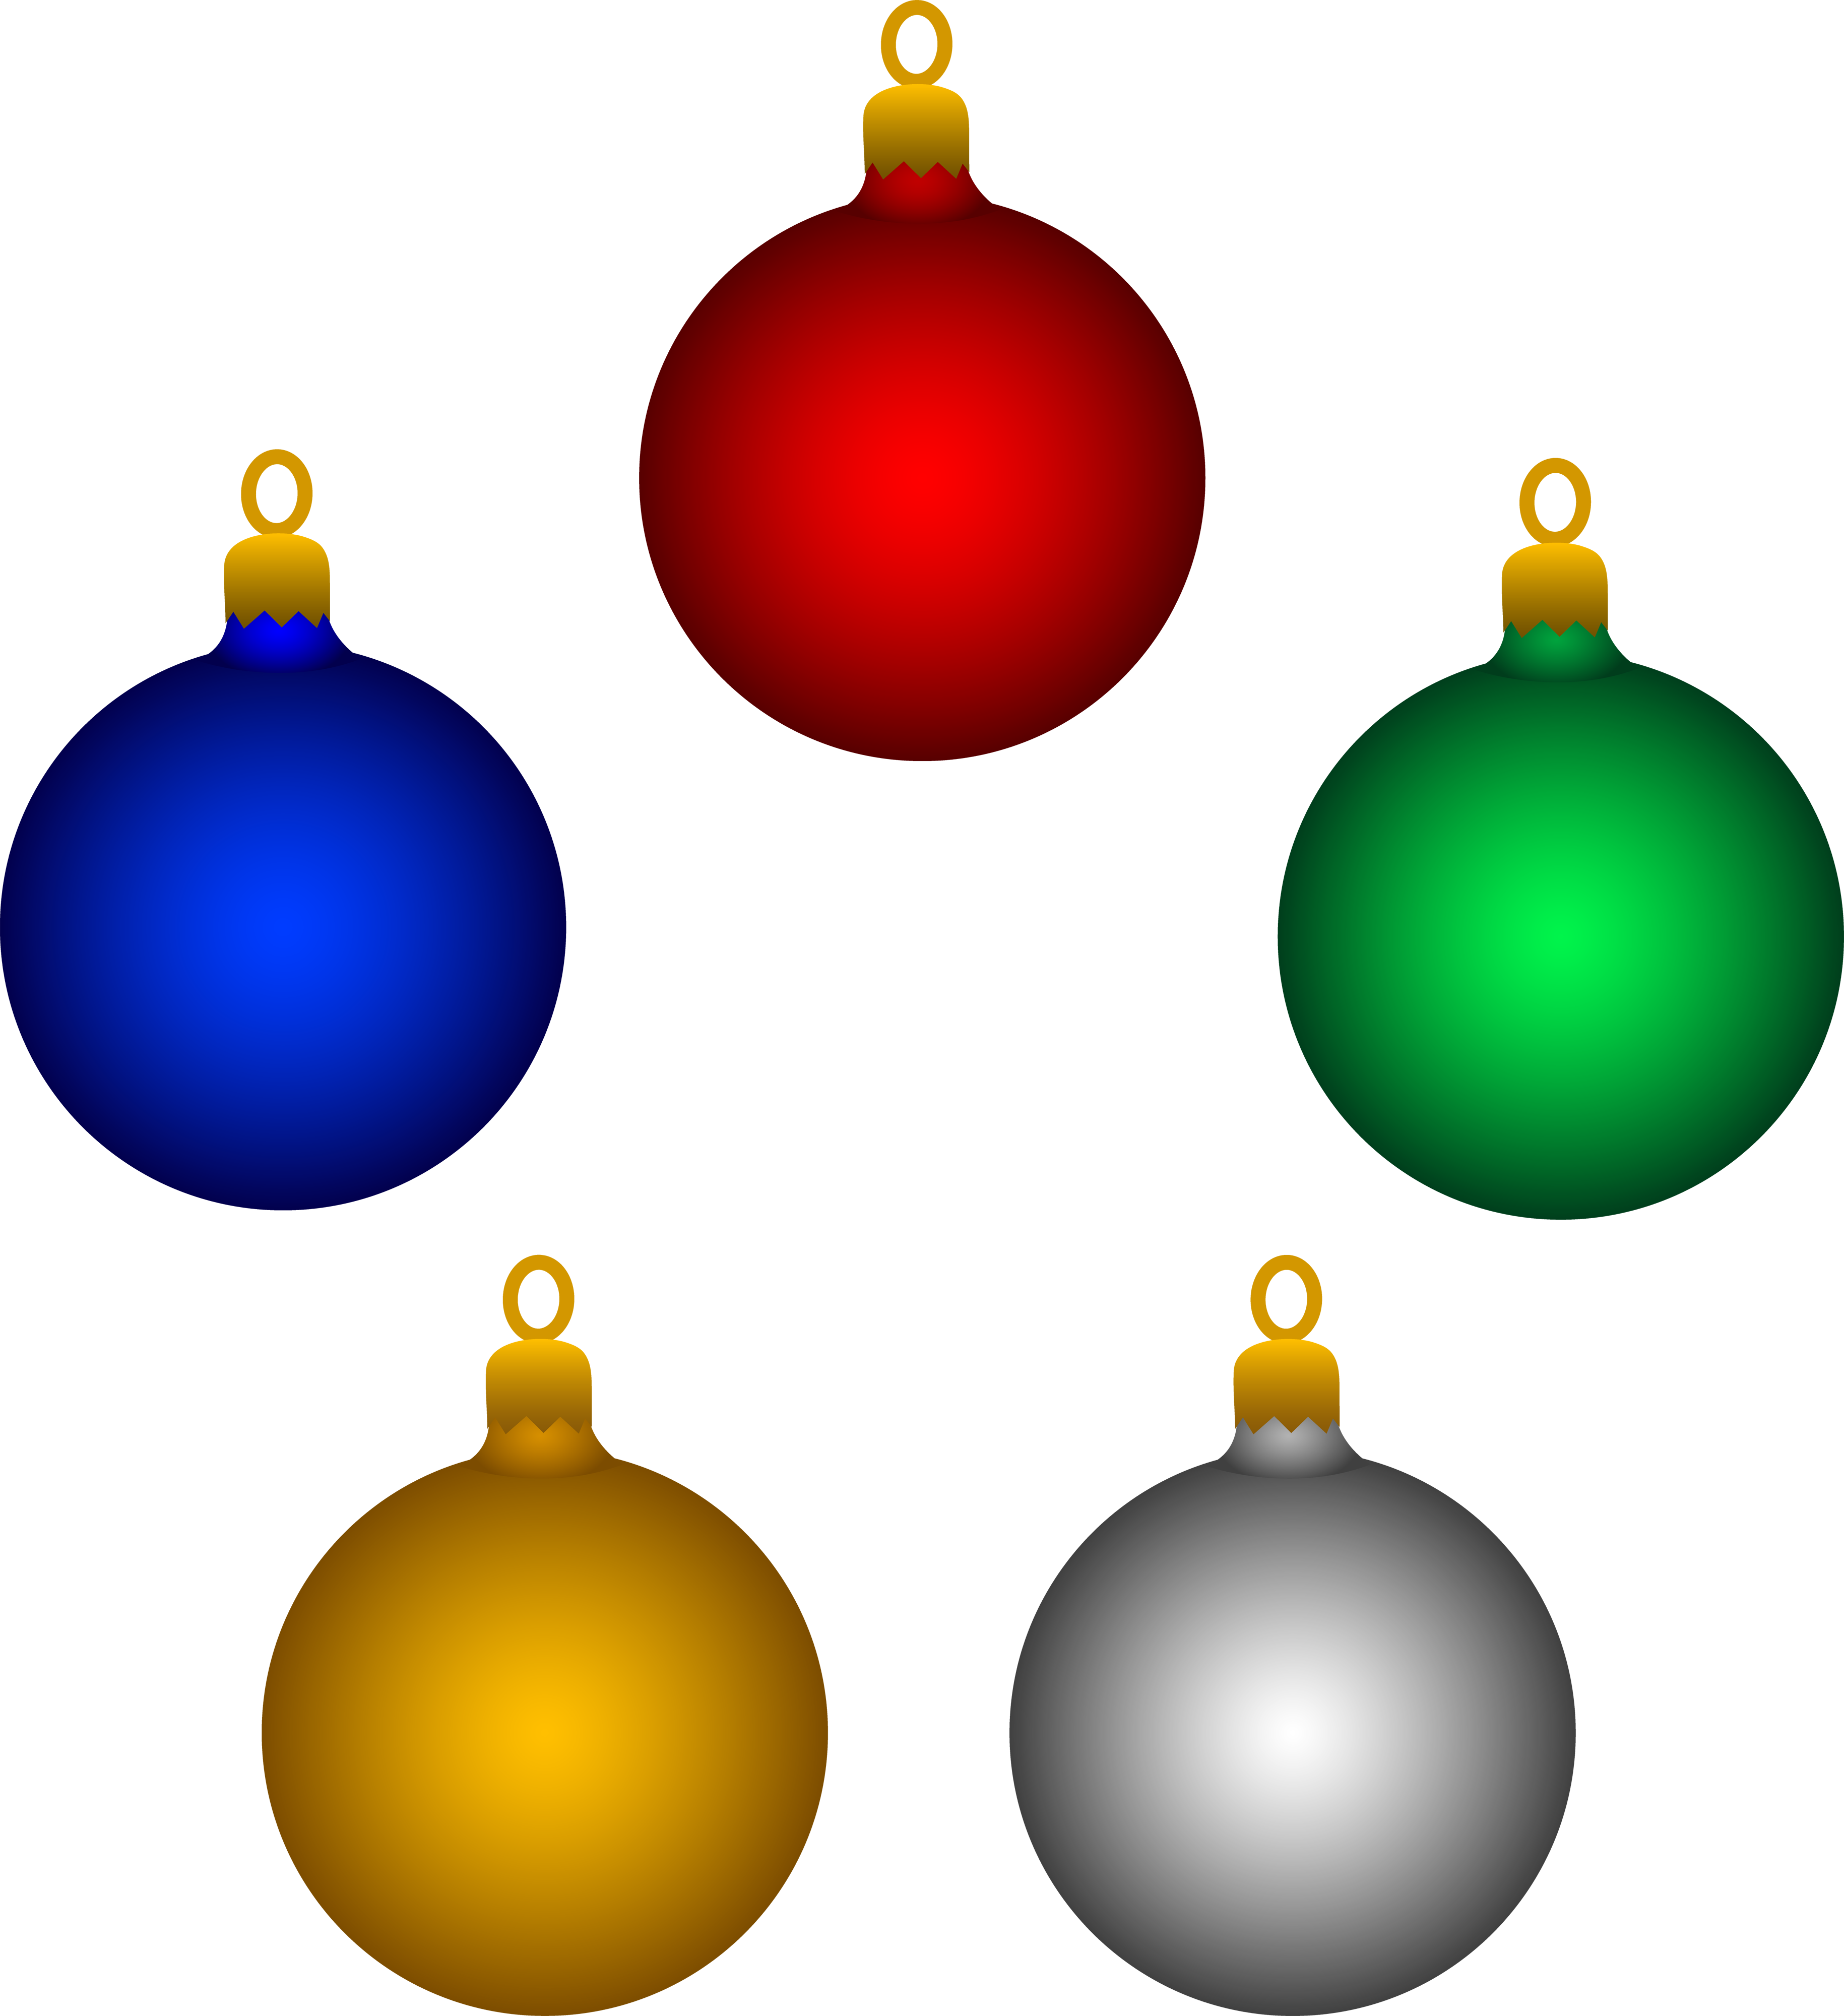 3659x4000 Five Shiny Christmas Tree Ornaments